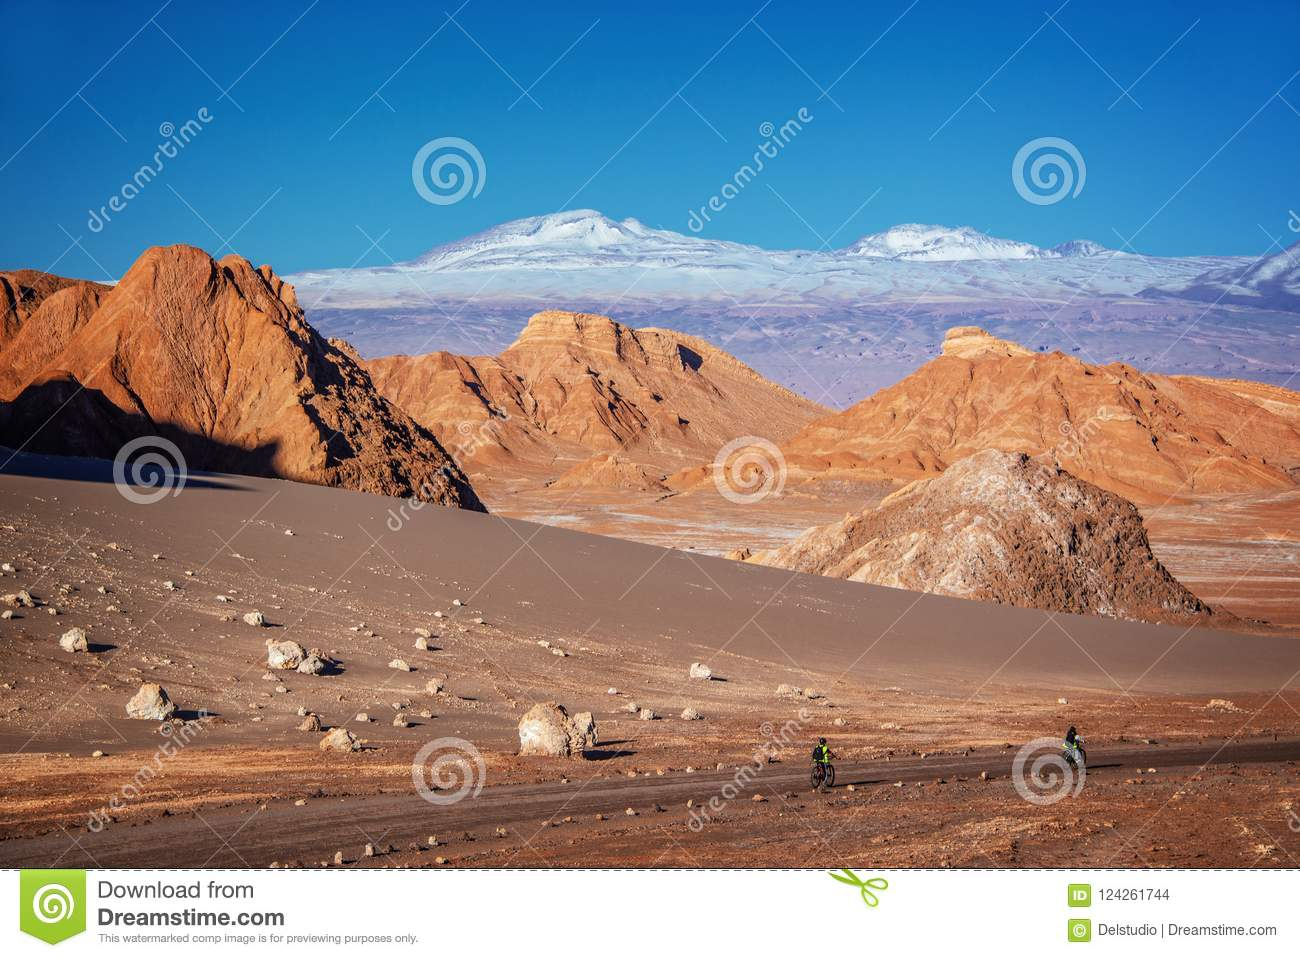 Image of: Image Travelers With Bicycles On Track In Moon Valley Atacama Desert Andes Mountain Range Dreamstimecom Travelers With Bicycles On Track In Moon Valley Atacama Desert